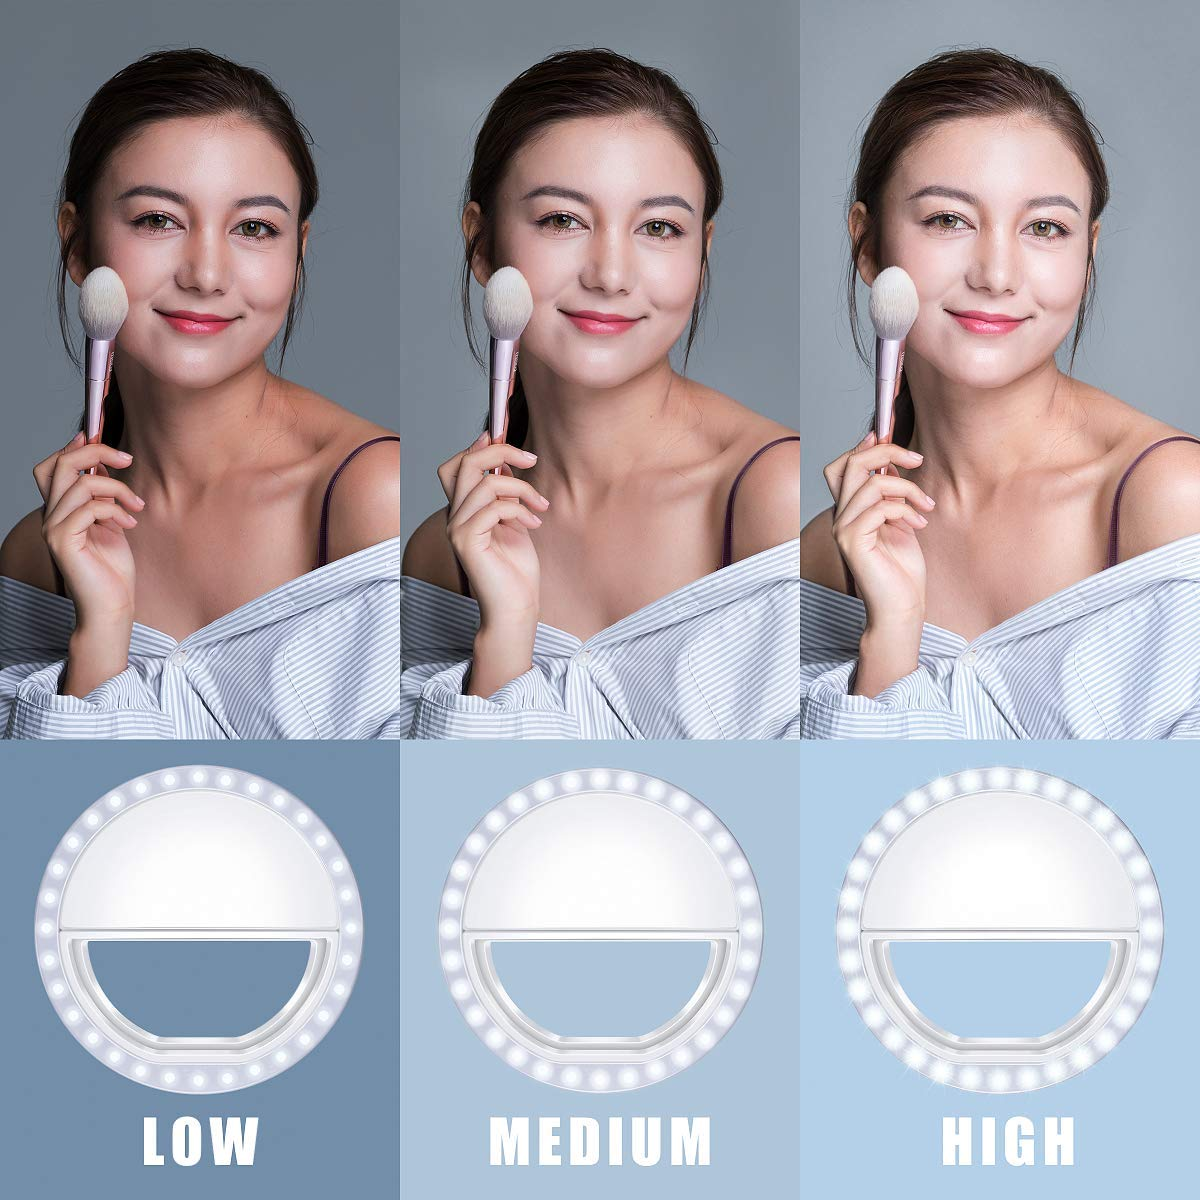 Meifigno Selfie Phone Camera Ring Light with [Rechargeable] 36 LED Light, 3-Level Adjustable Brightness On-Video Lights Clips On Night Makeup Light Compatible for iPhone Samsung Photography (White) by Meifigno (Image #3)